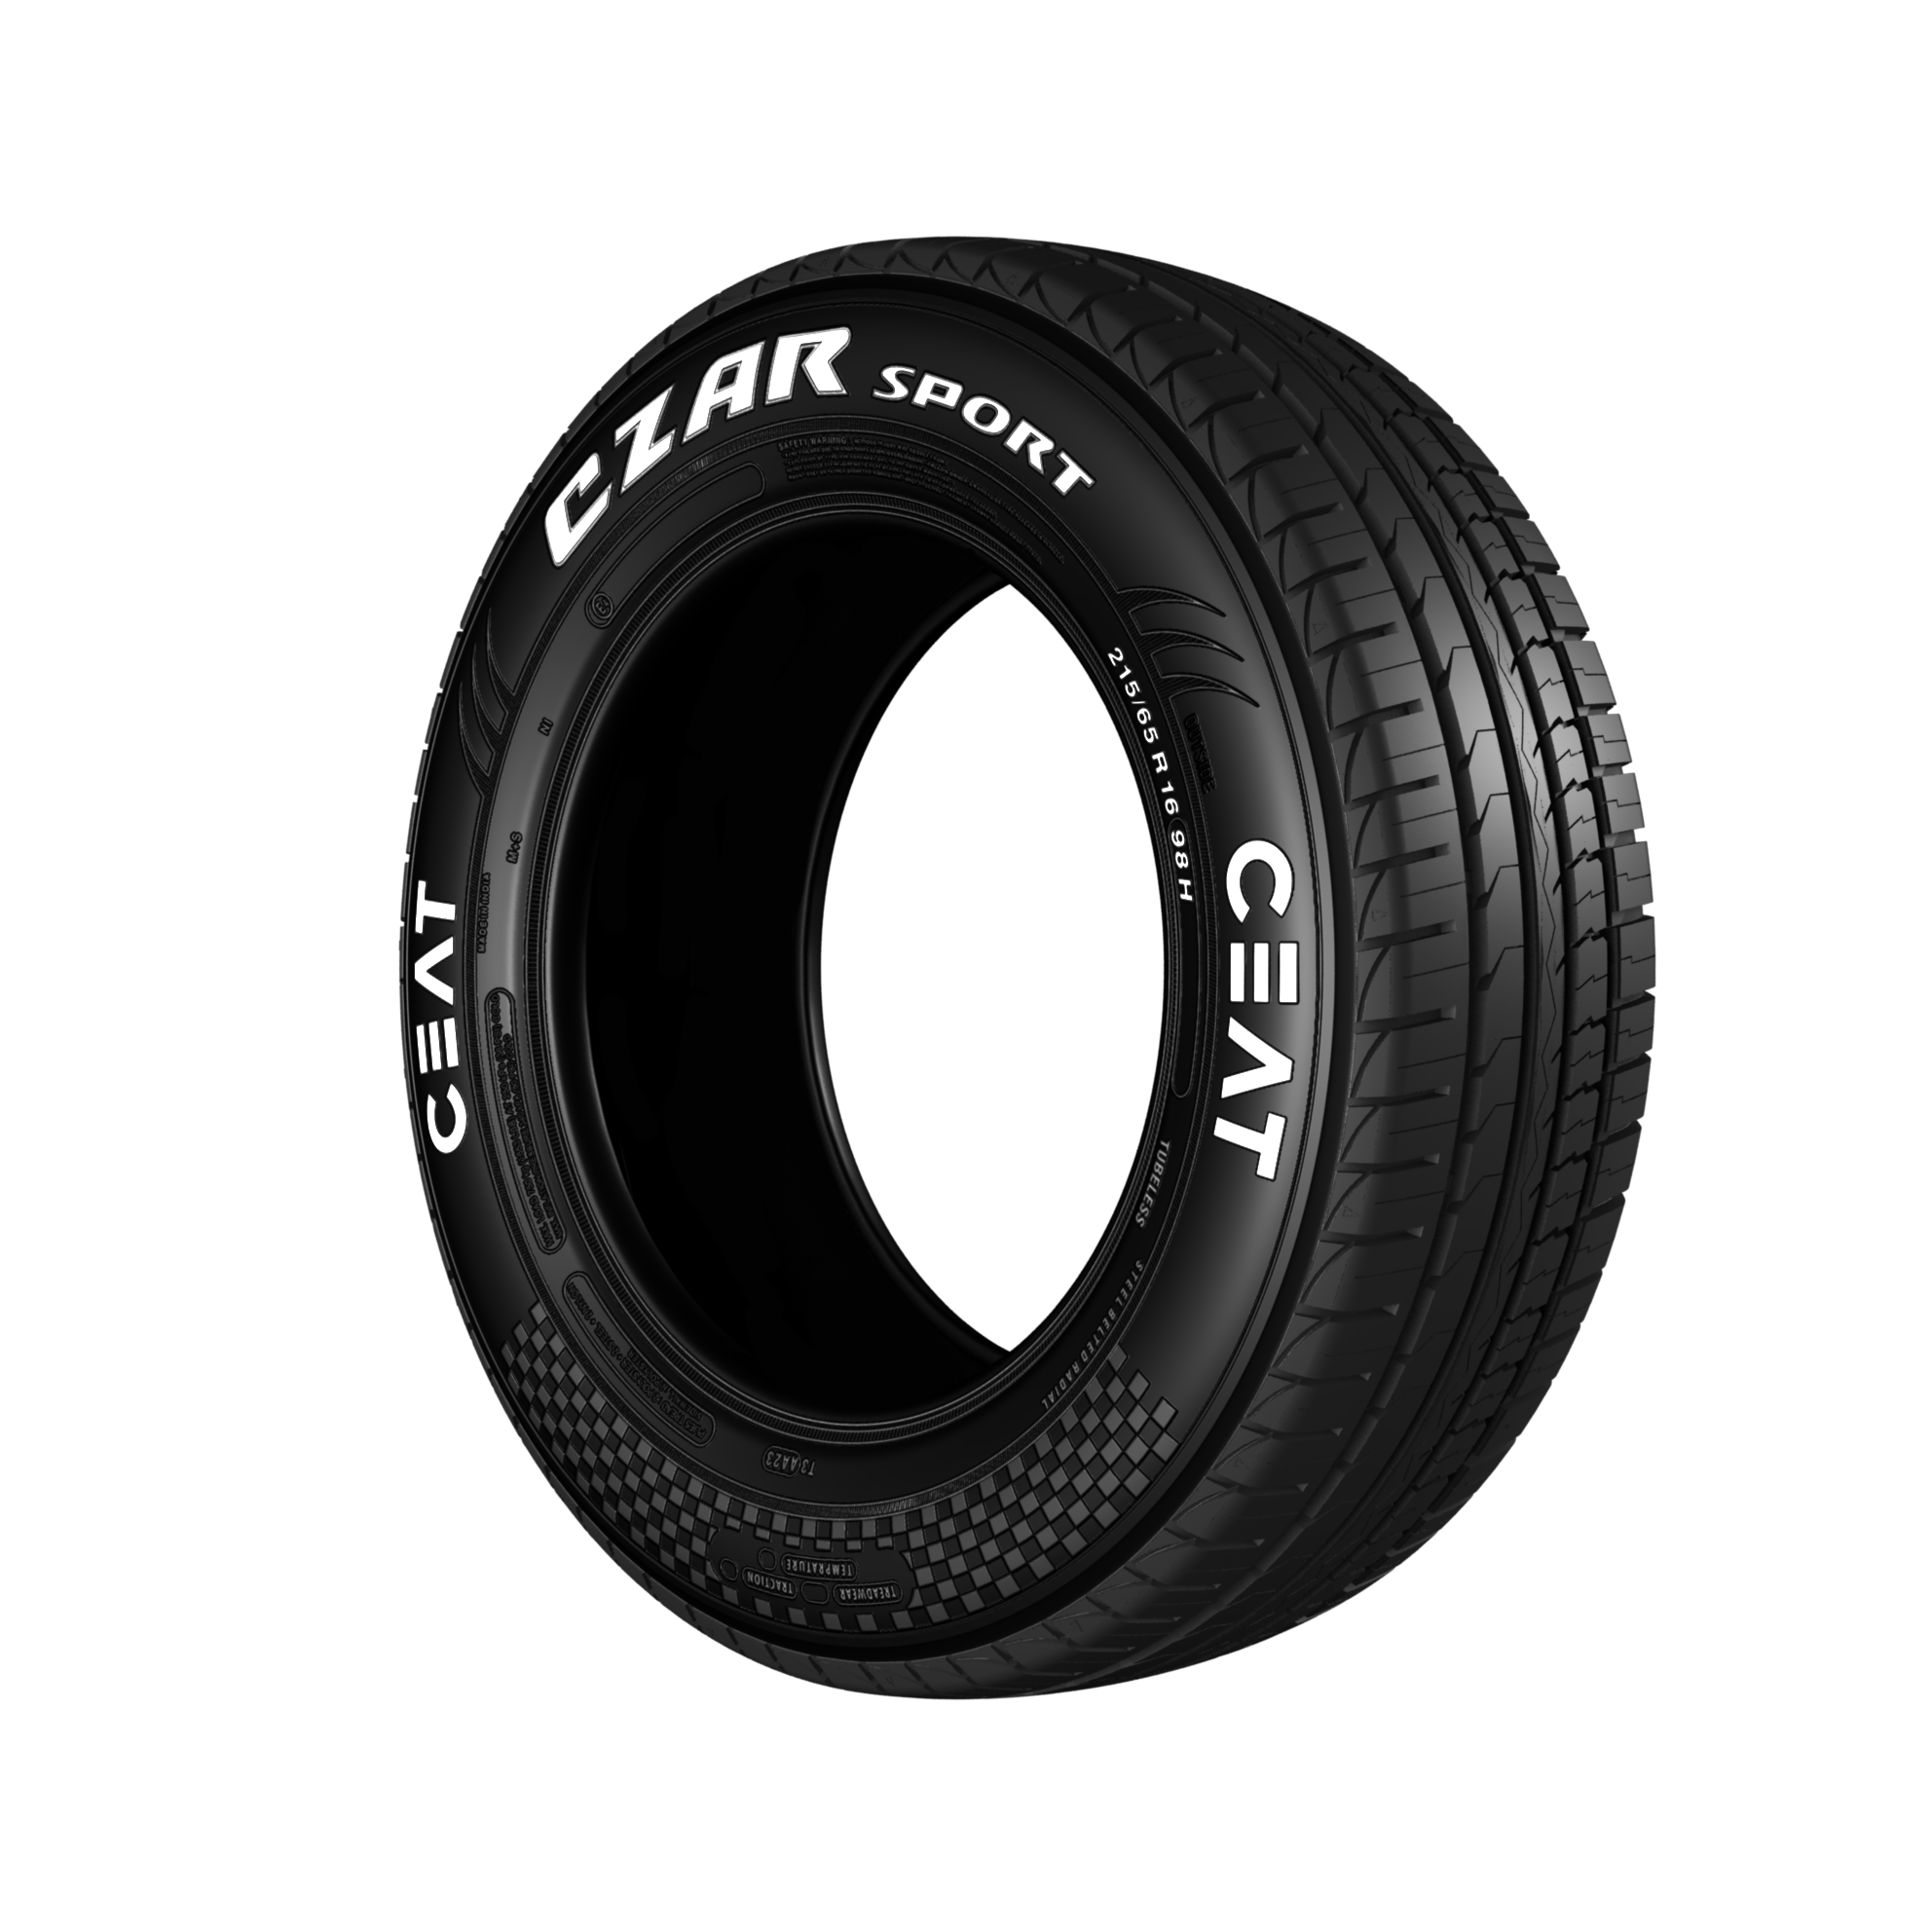 CEAT CZAR SPORTS 205/60 R 16 Tubeless 92 H Car Tyre